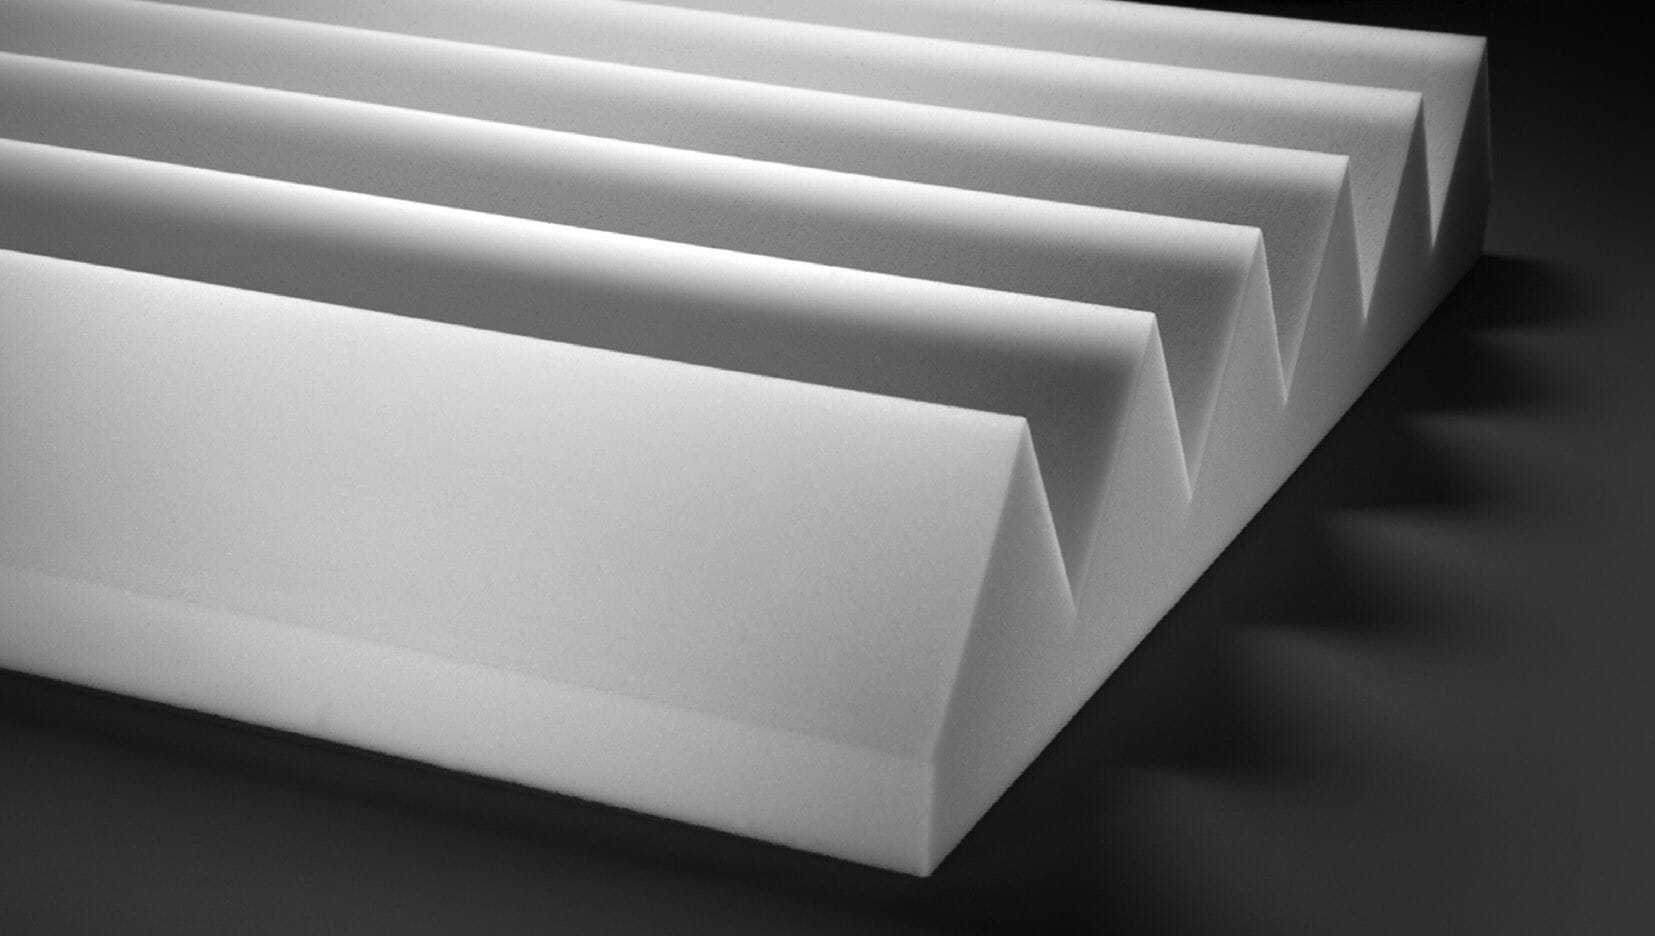 Ways a Sound Barrier Sheet Improves Your Health